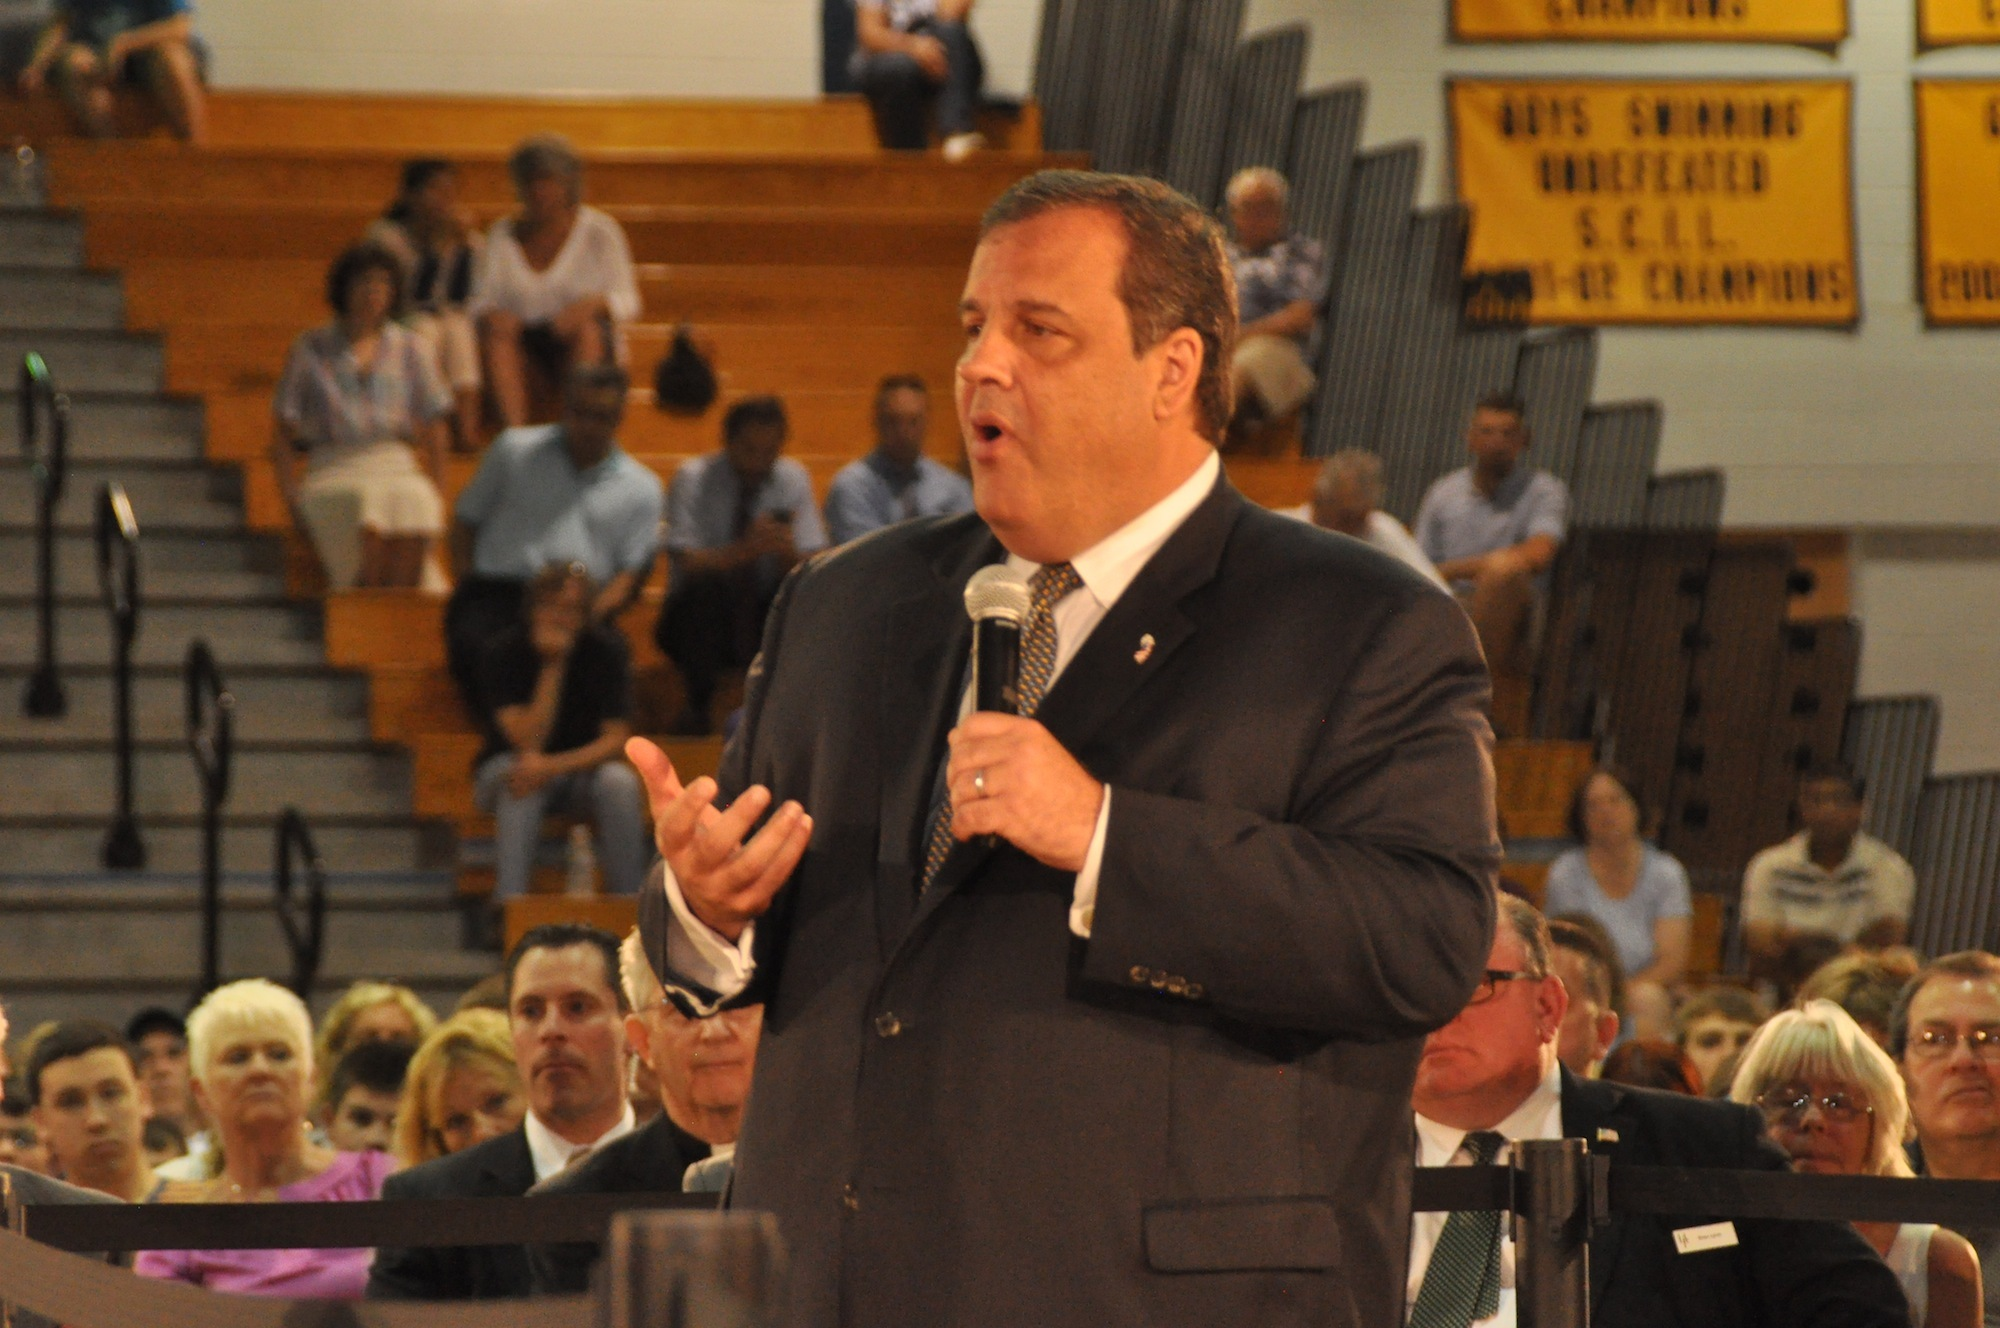 New jersey sussex county vernon - Governor Chris Christie At Vernon Township High School On Friday June 28 Credits Jennifer Jean Miller